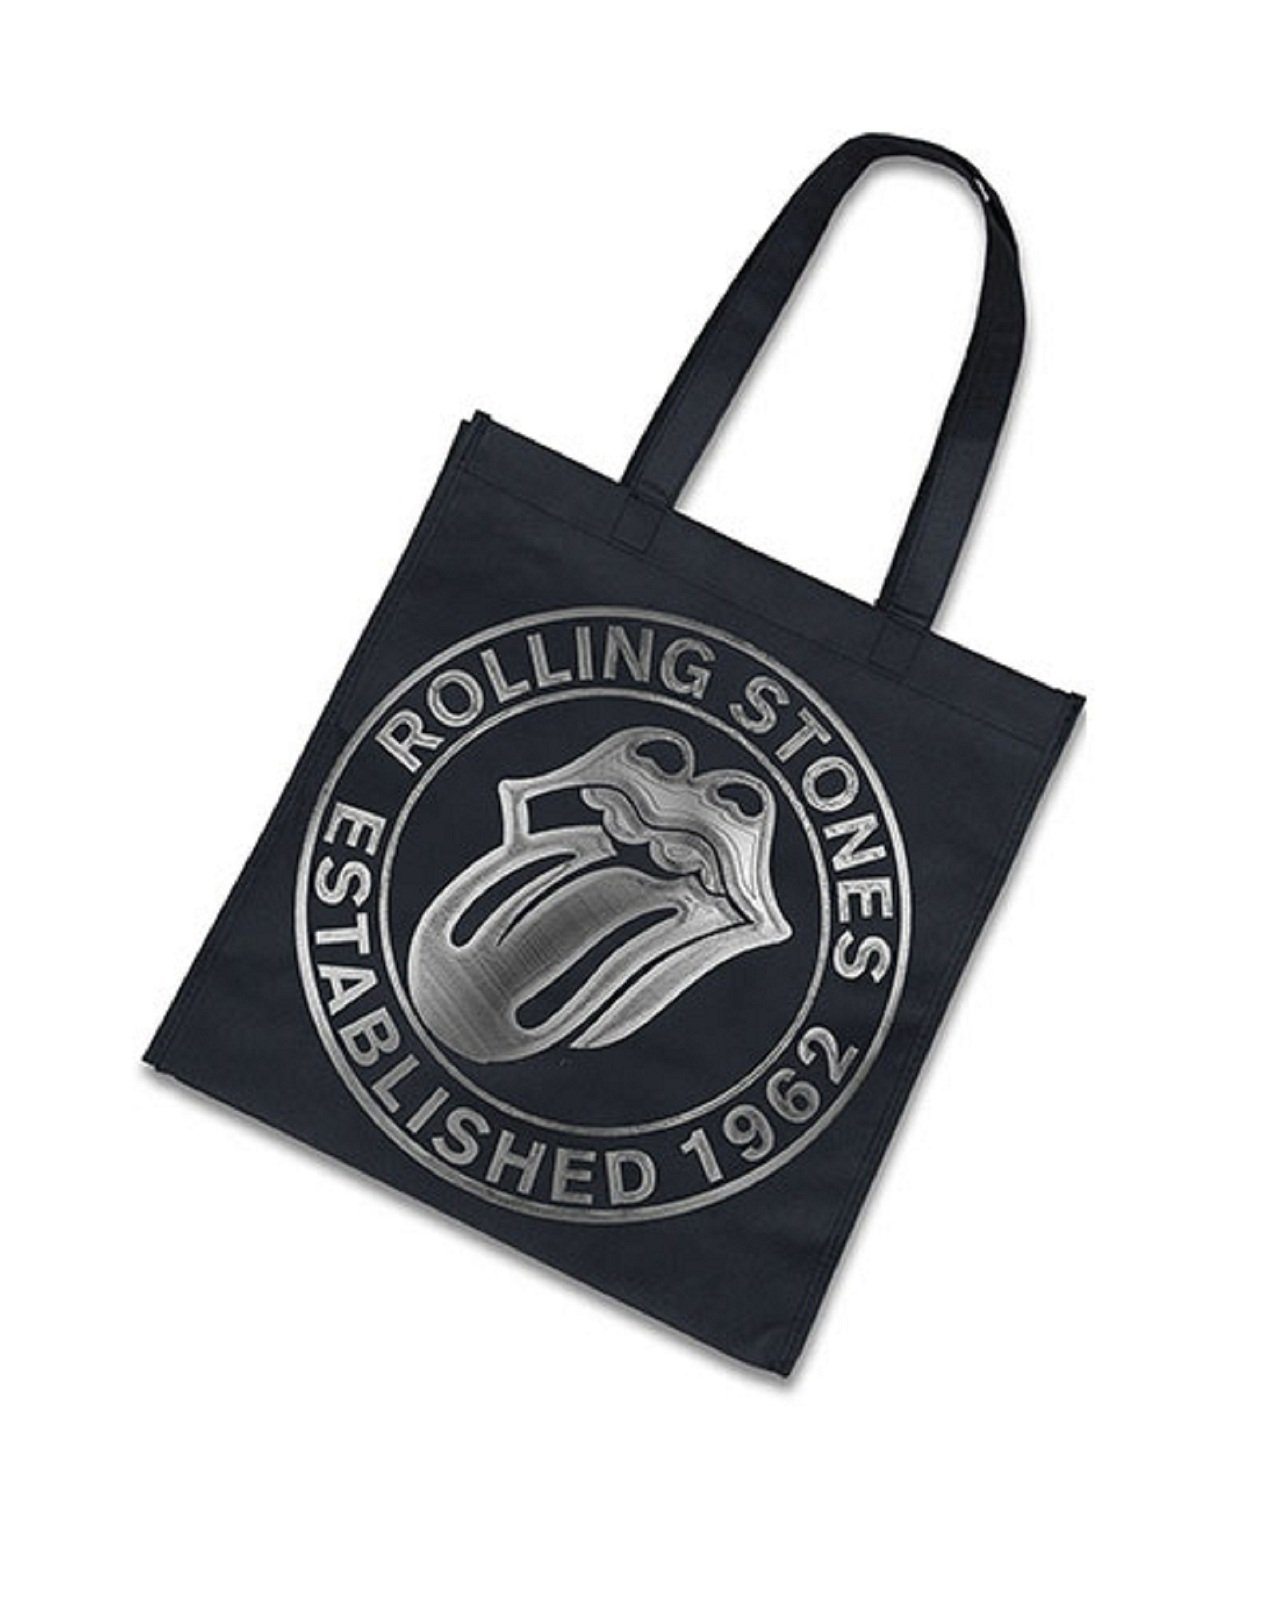 The Rolling Stones Est 1962 Logo Official Black Tote Shopper Bag